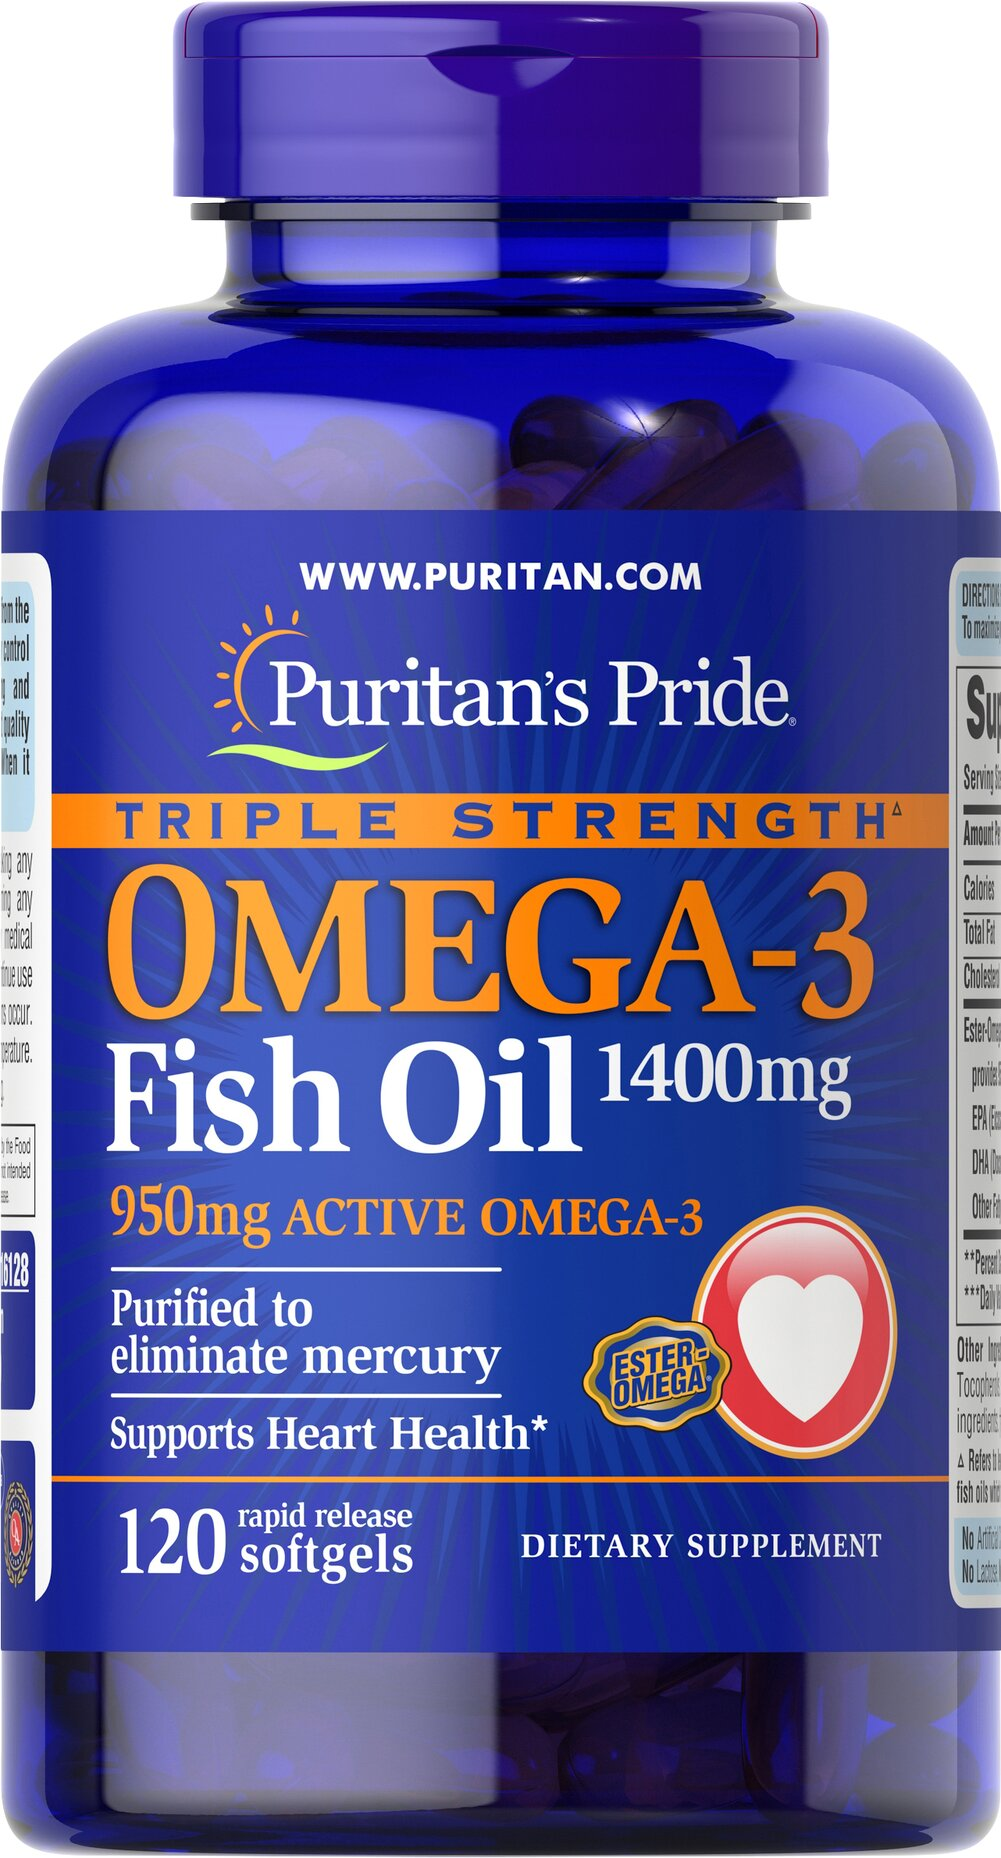 Triple Strength Omega-3 Fish Oil 1360 mg (950 mg Active Omega-3)  120 Softgels 1360 mg $39.99